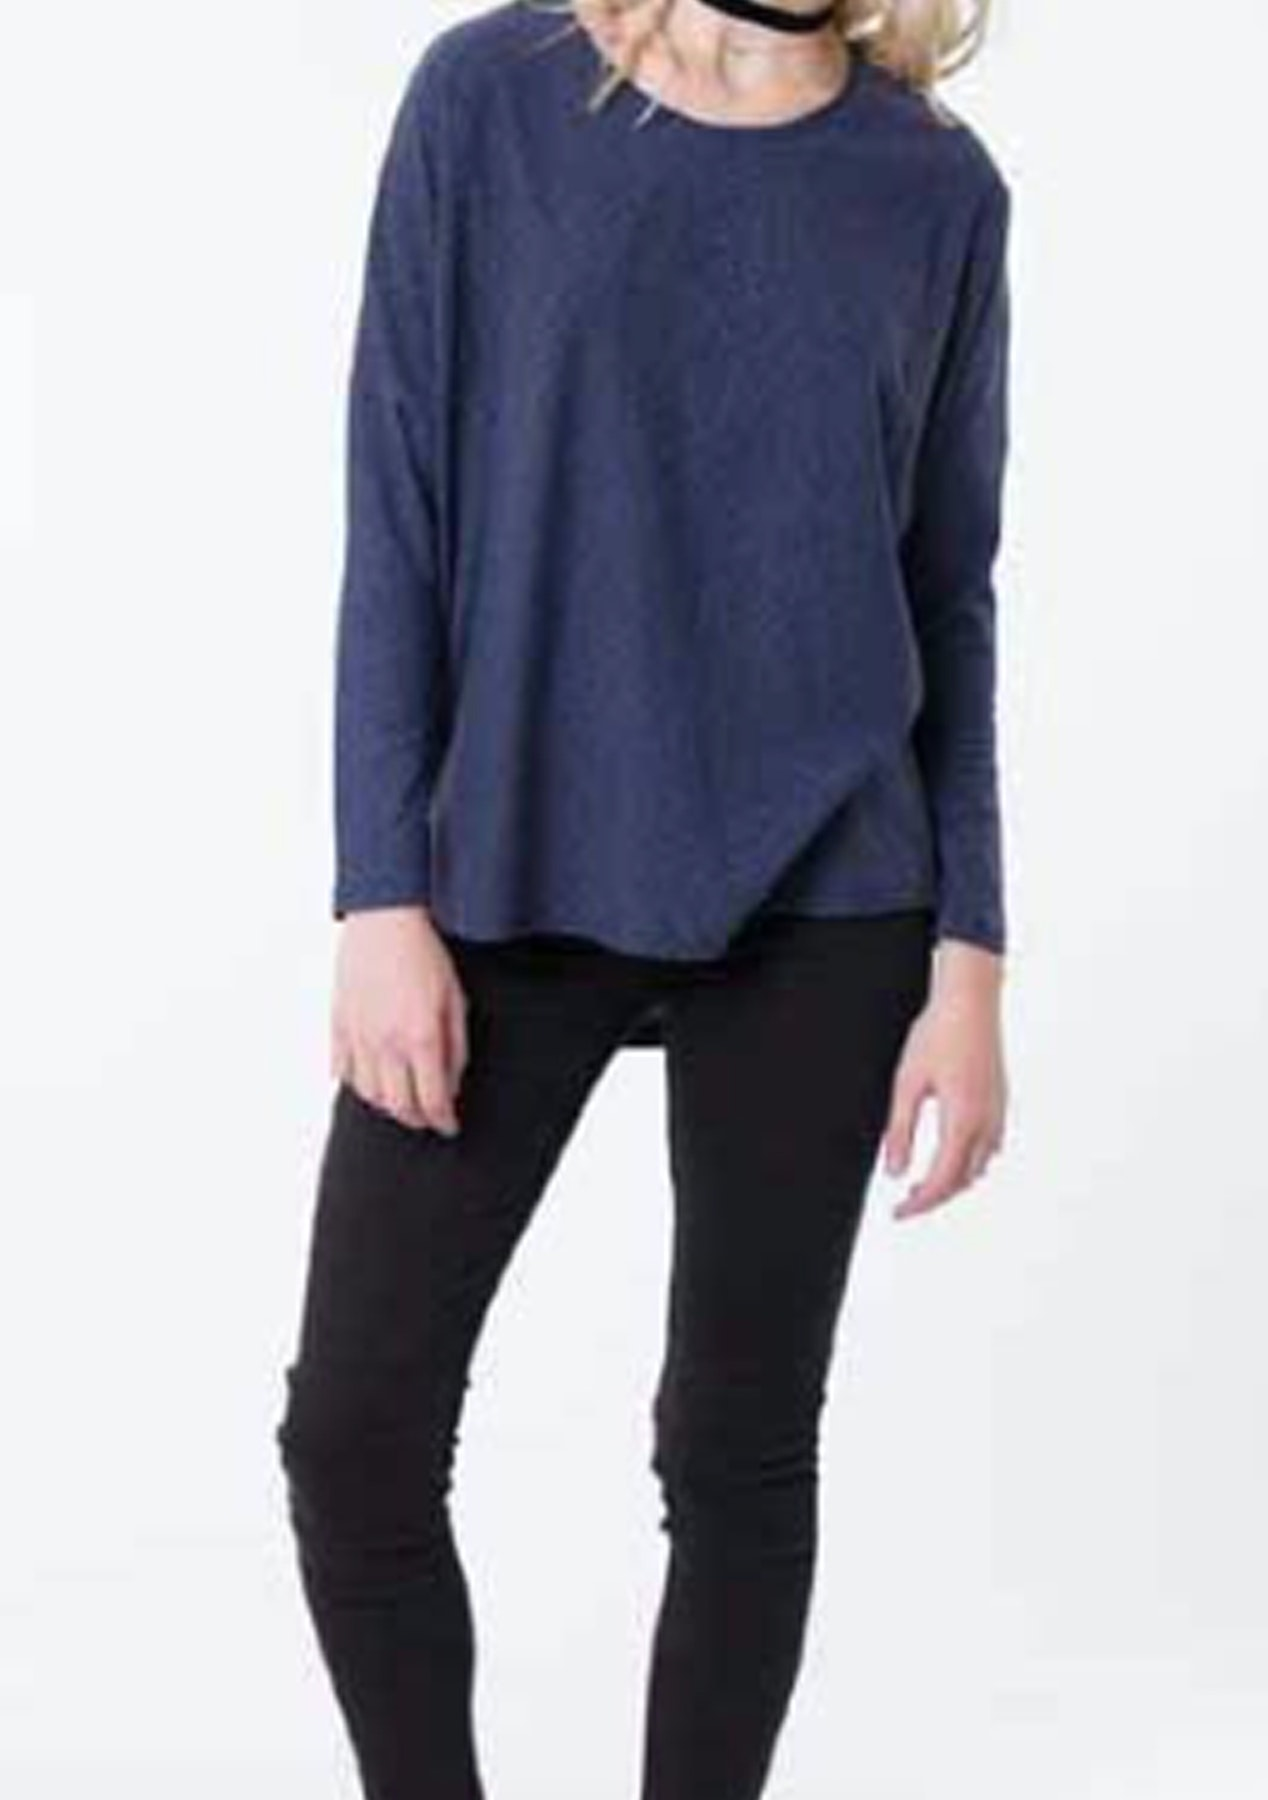 a1f7a0f39e Silent Theory - All Over Again Ls Top - Navy - Under $20 Womens Garage Sale  - Onceit